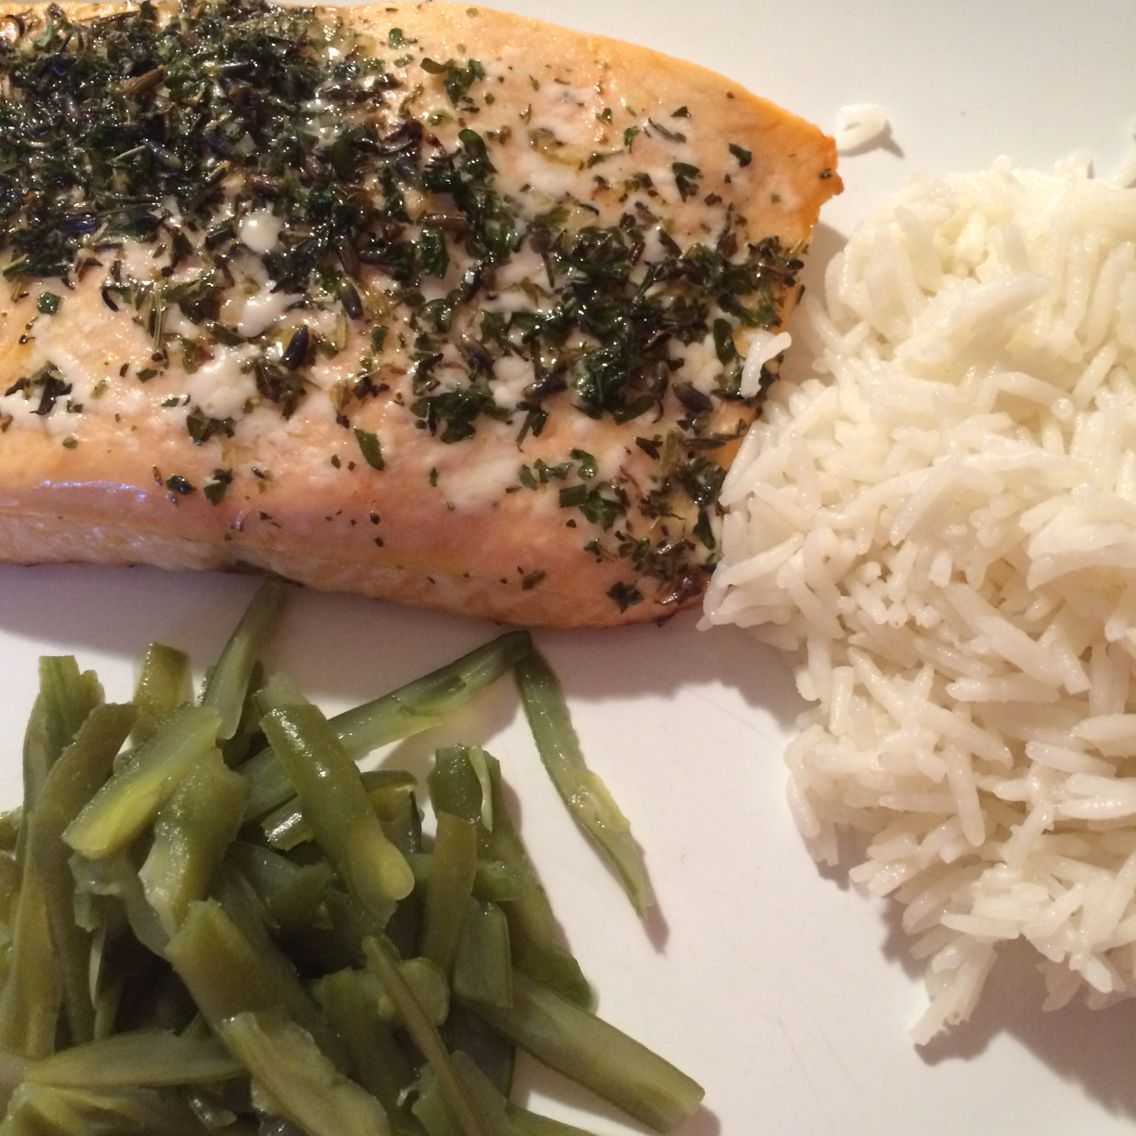 The easy haven't planned classic for me. Salmon, rice and a veggie.